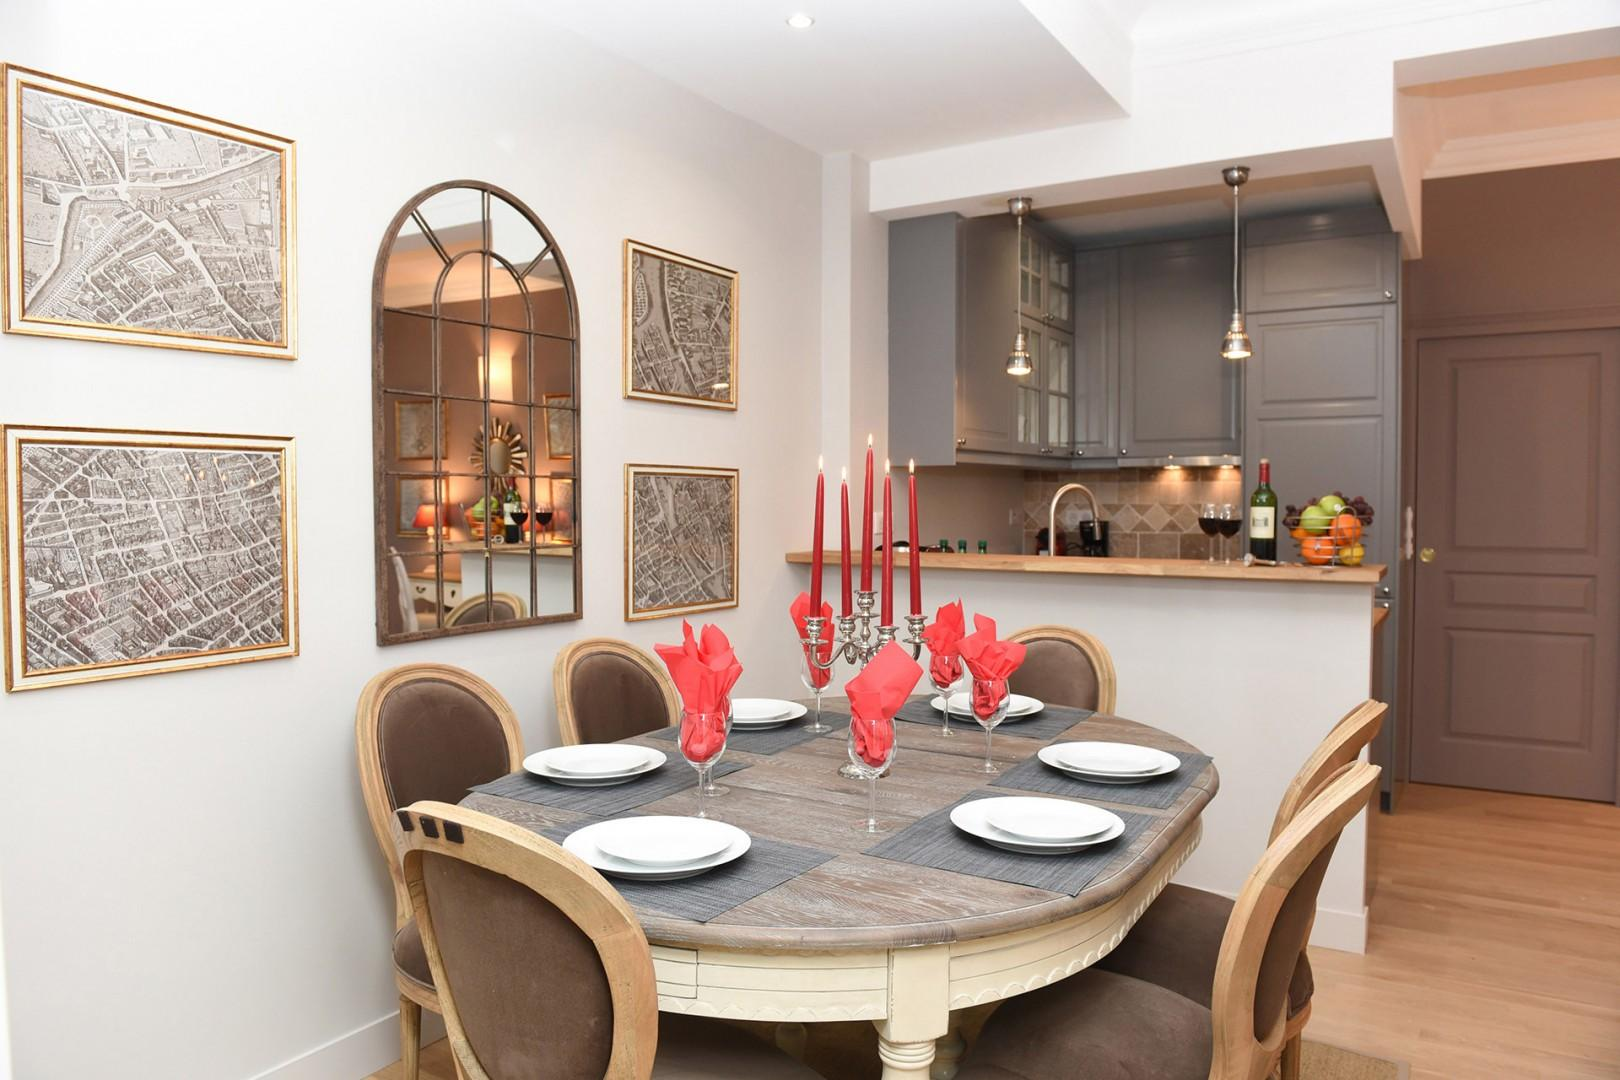 The dining table comfortably seats up to six people.